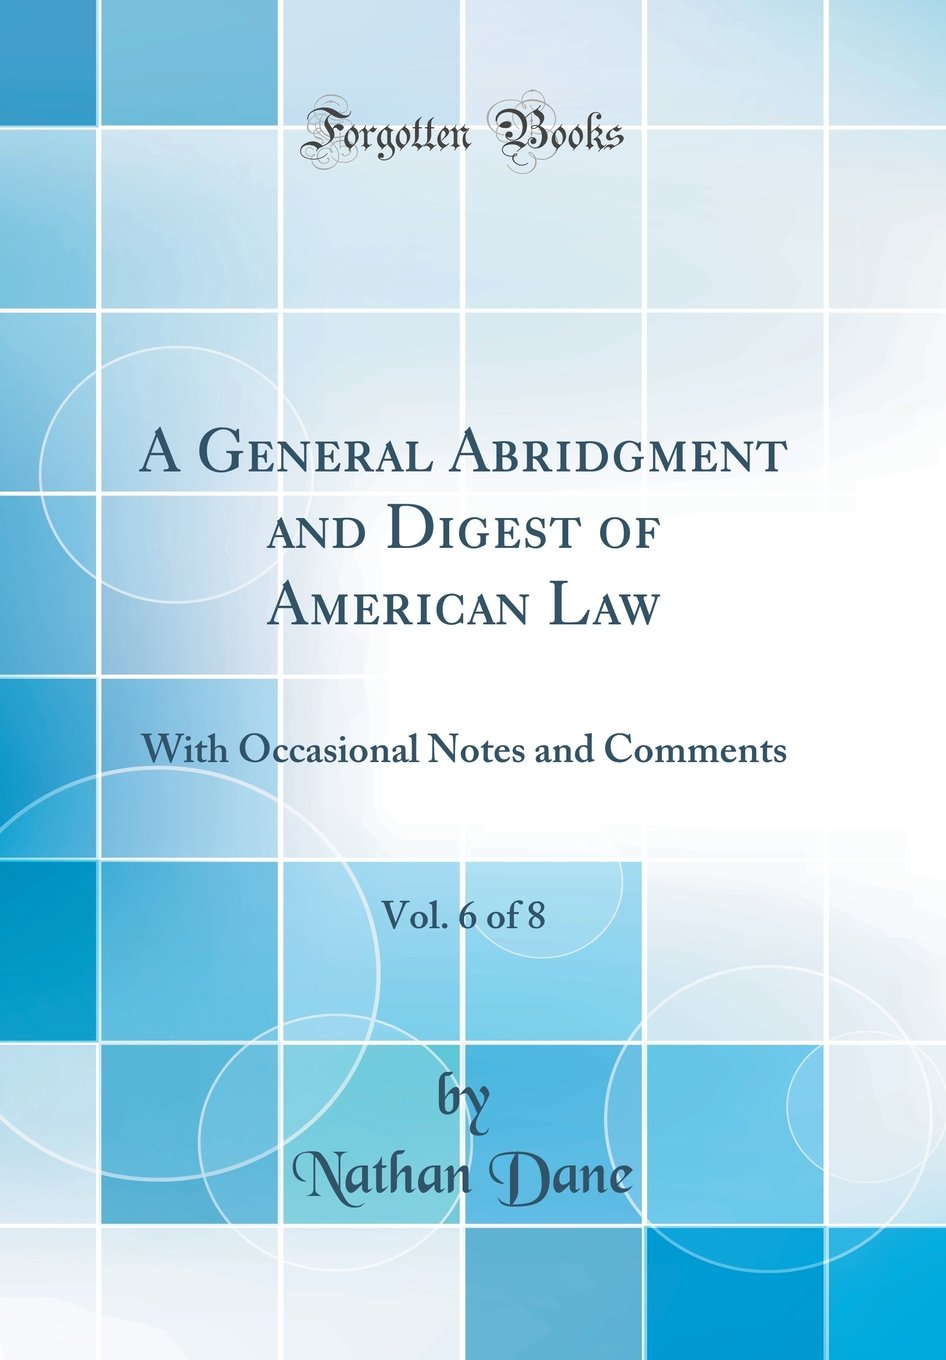 Read Online A General Abridgment and Digest of American Law, Vol. 6 of 8: With Occasional Notes and Comments (Classic Reprint) PDF